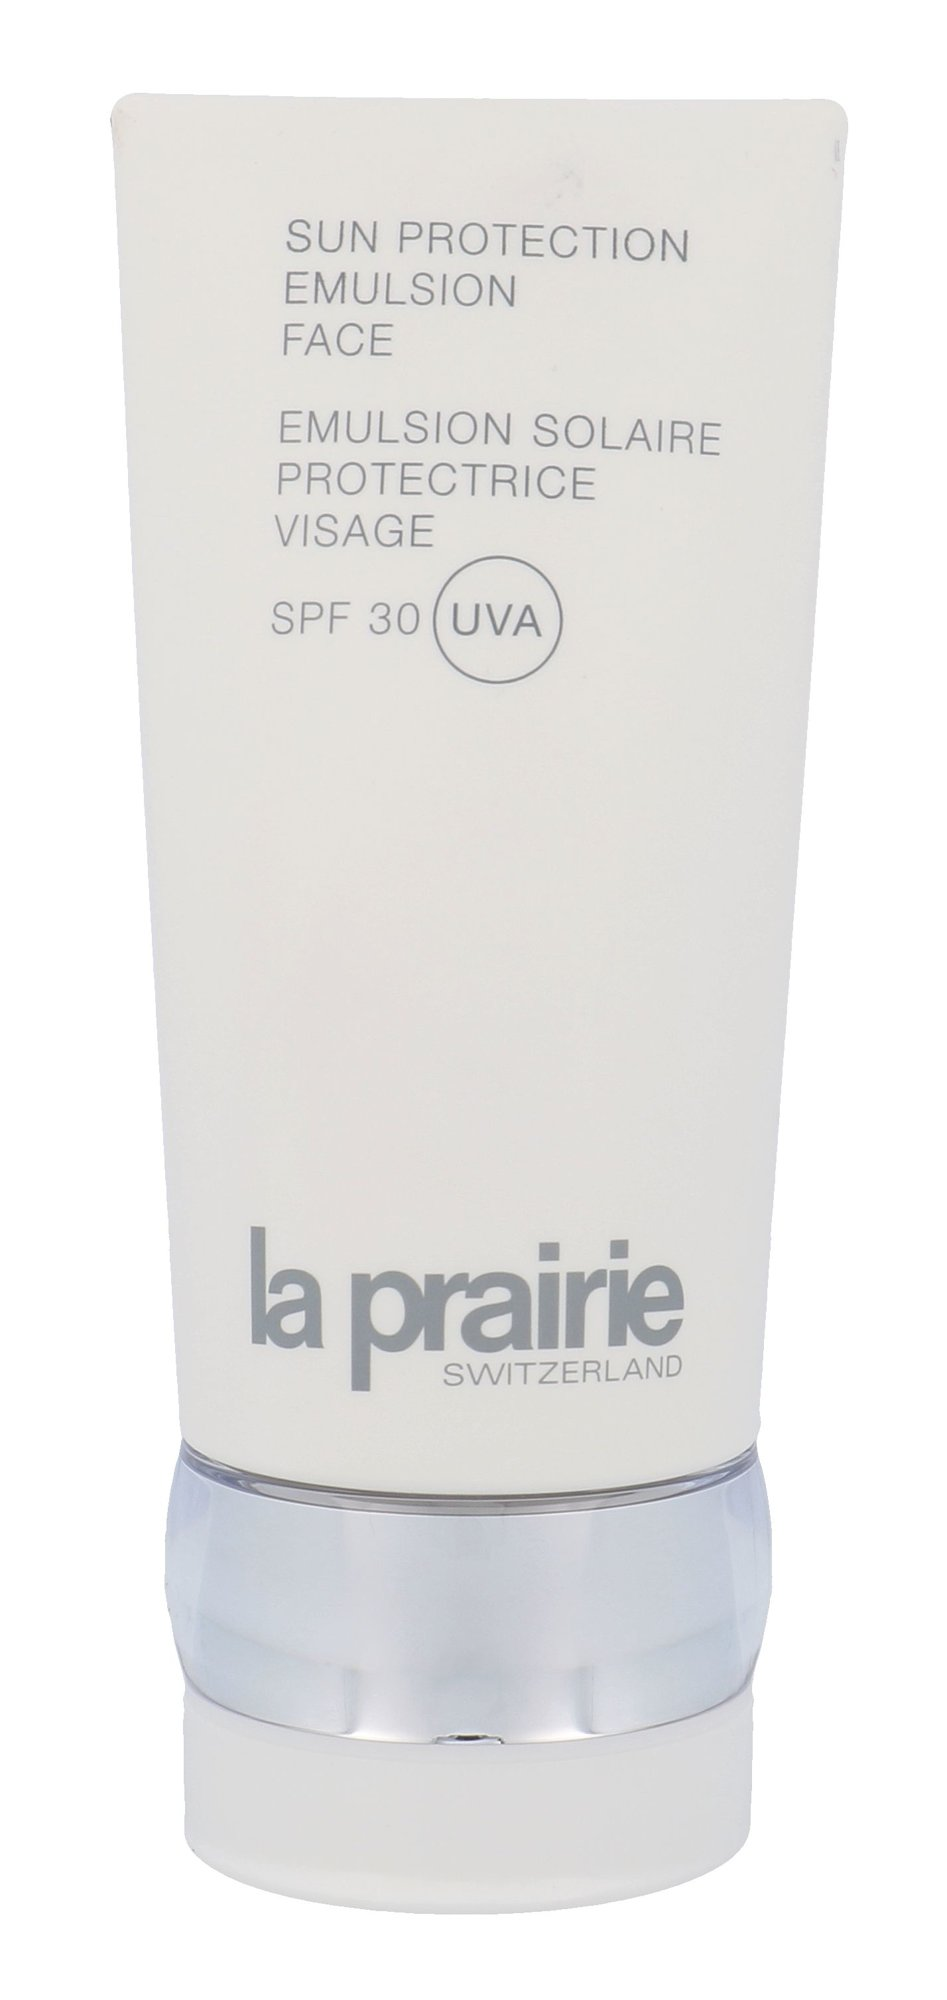 La Prairie Sun Protection Cosmetic 125ml